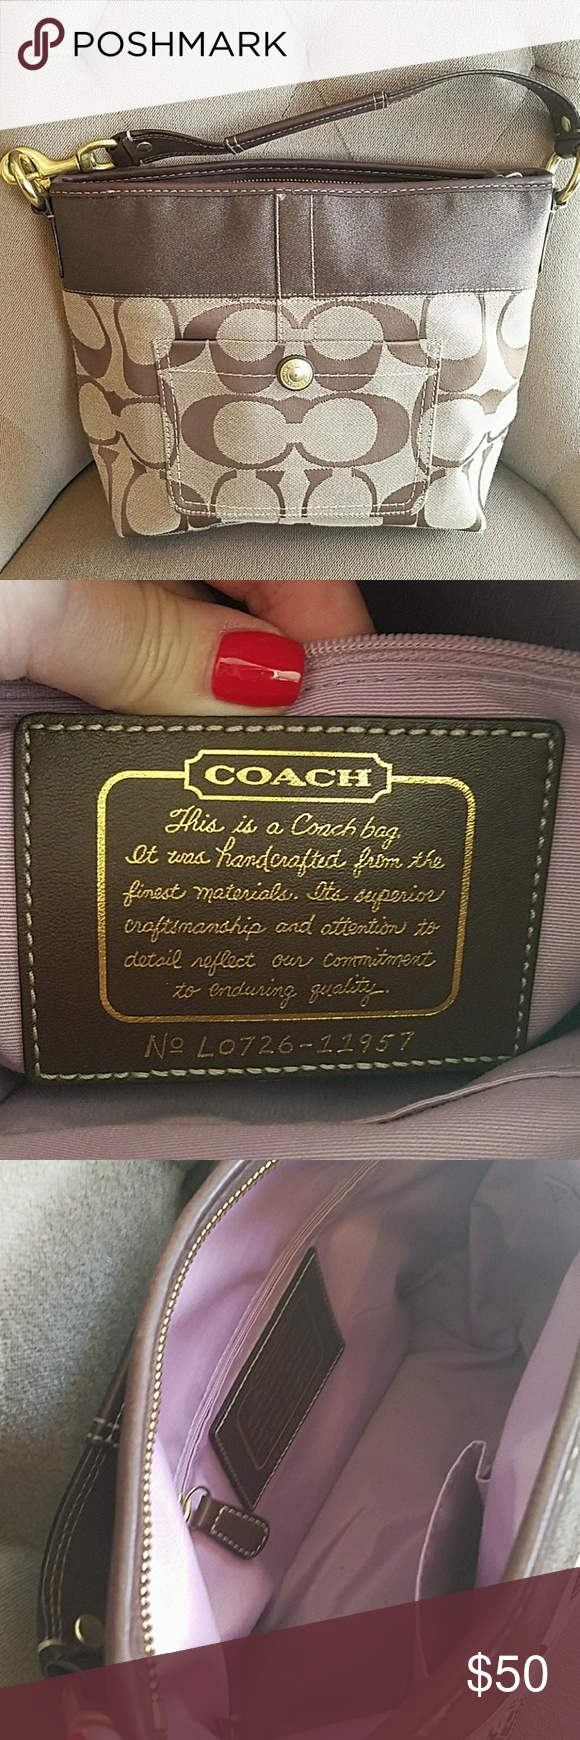 Coach Handbag Super cute Coach purse. Traditional C pattern with lavender lining inside. Excellent condition! Coach Bags Shoulder Bags